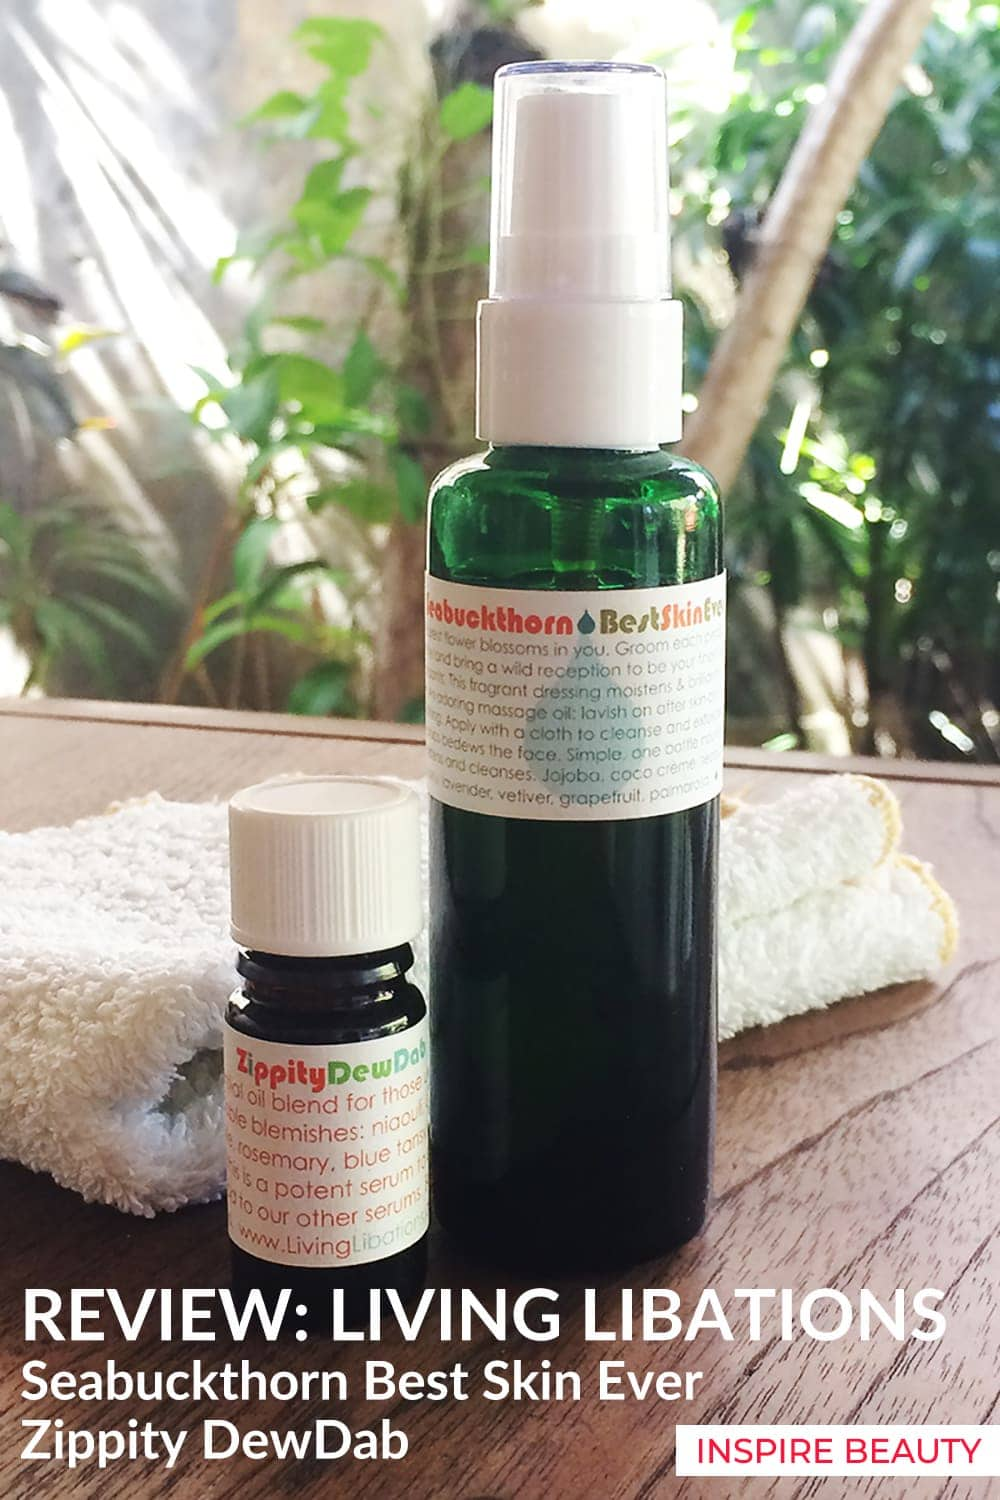 Review of Living Libations skincare routine for acne prone skin featuring Seabuckthorn Best Skin Ever and Zippity DewDab